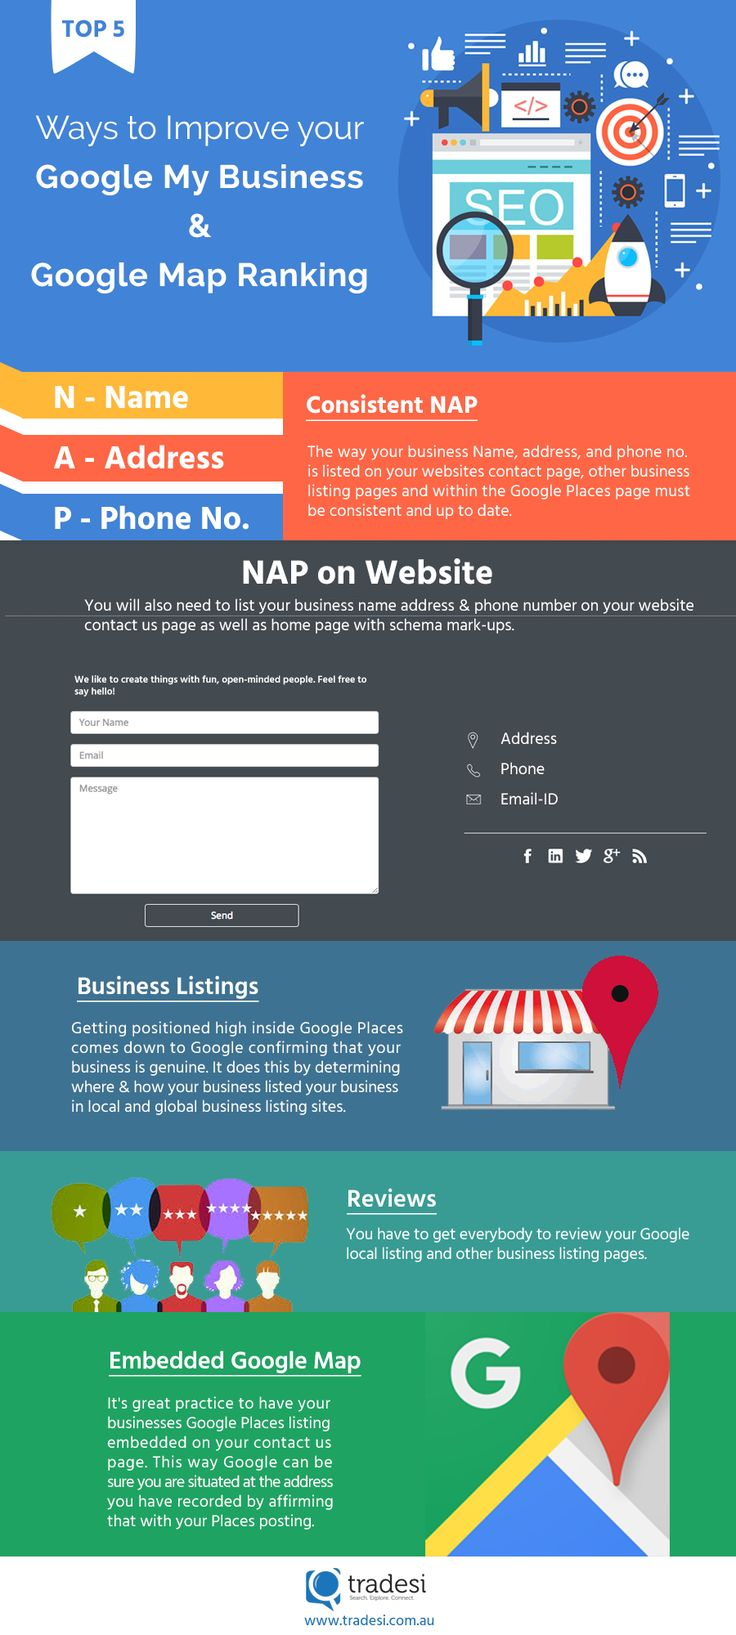 Top 5 Ways to Improve your Google My Business & Google Map Ranking – Infographic